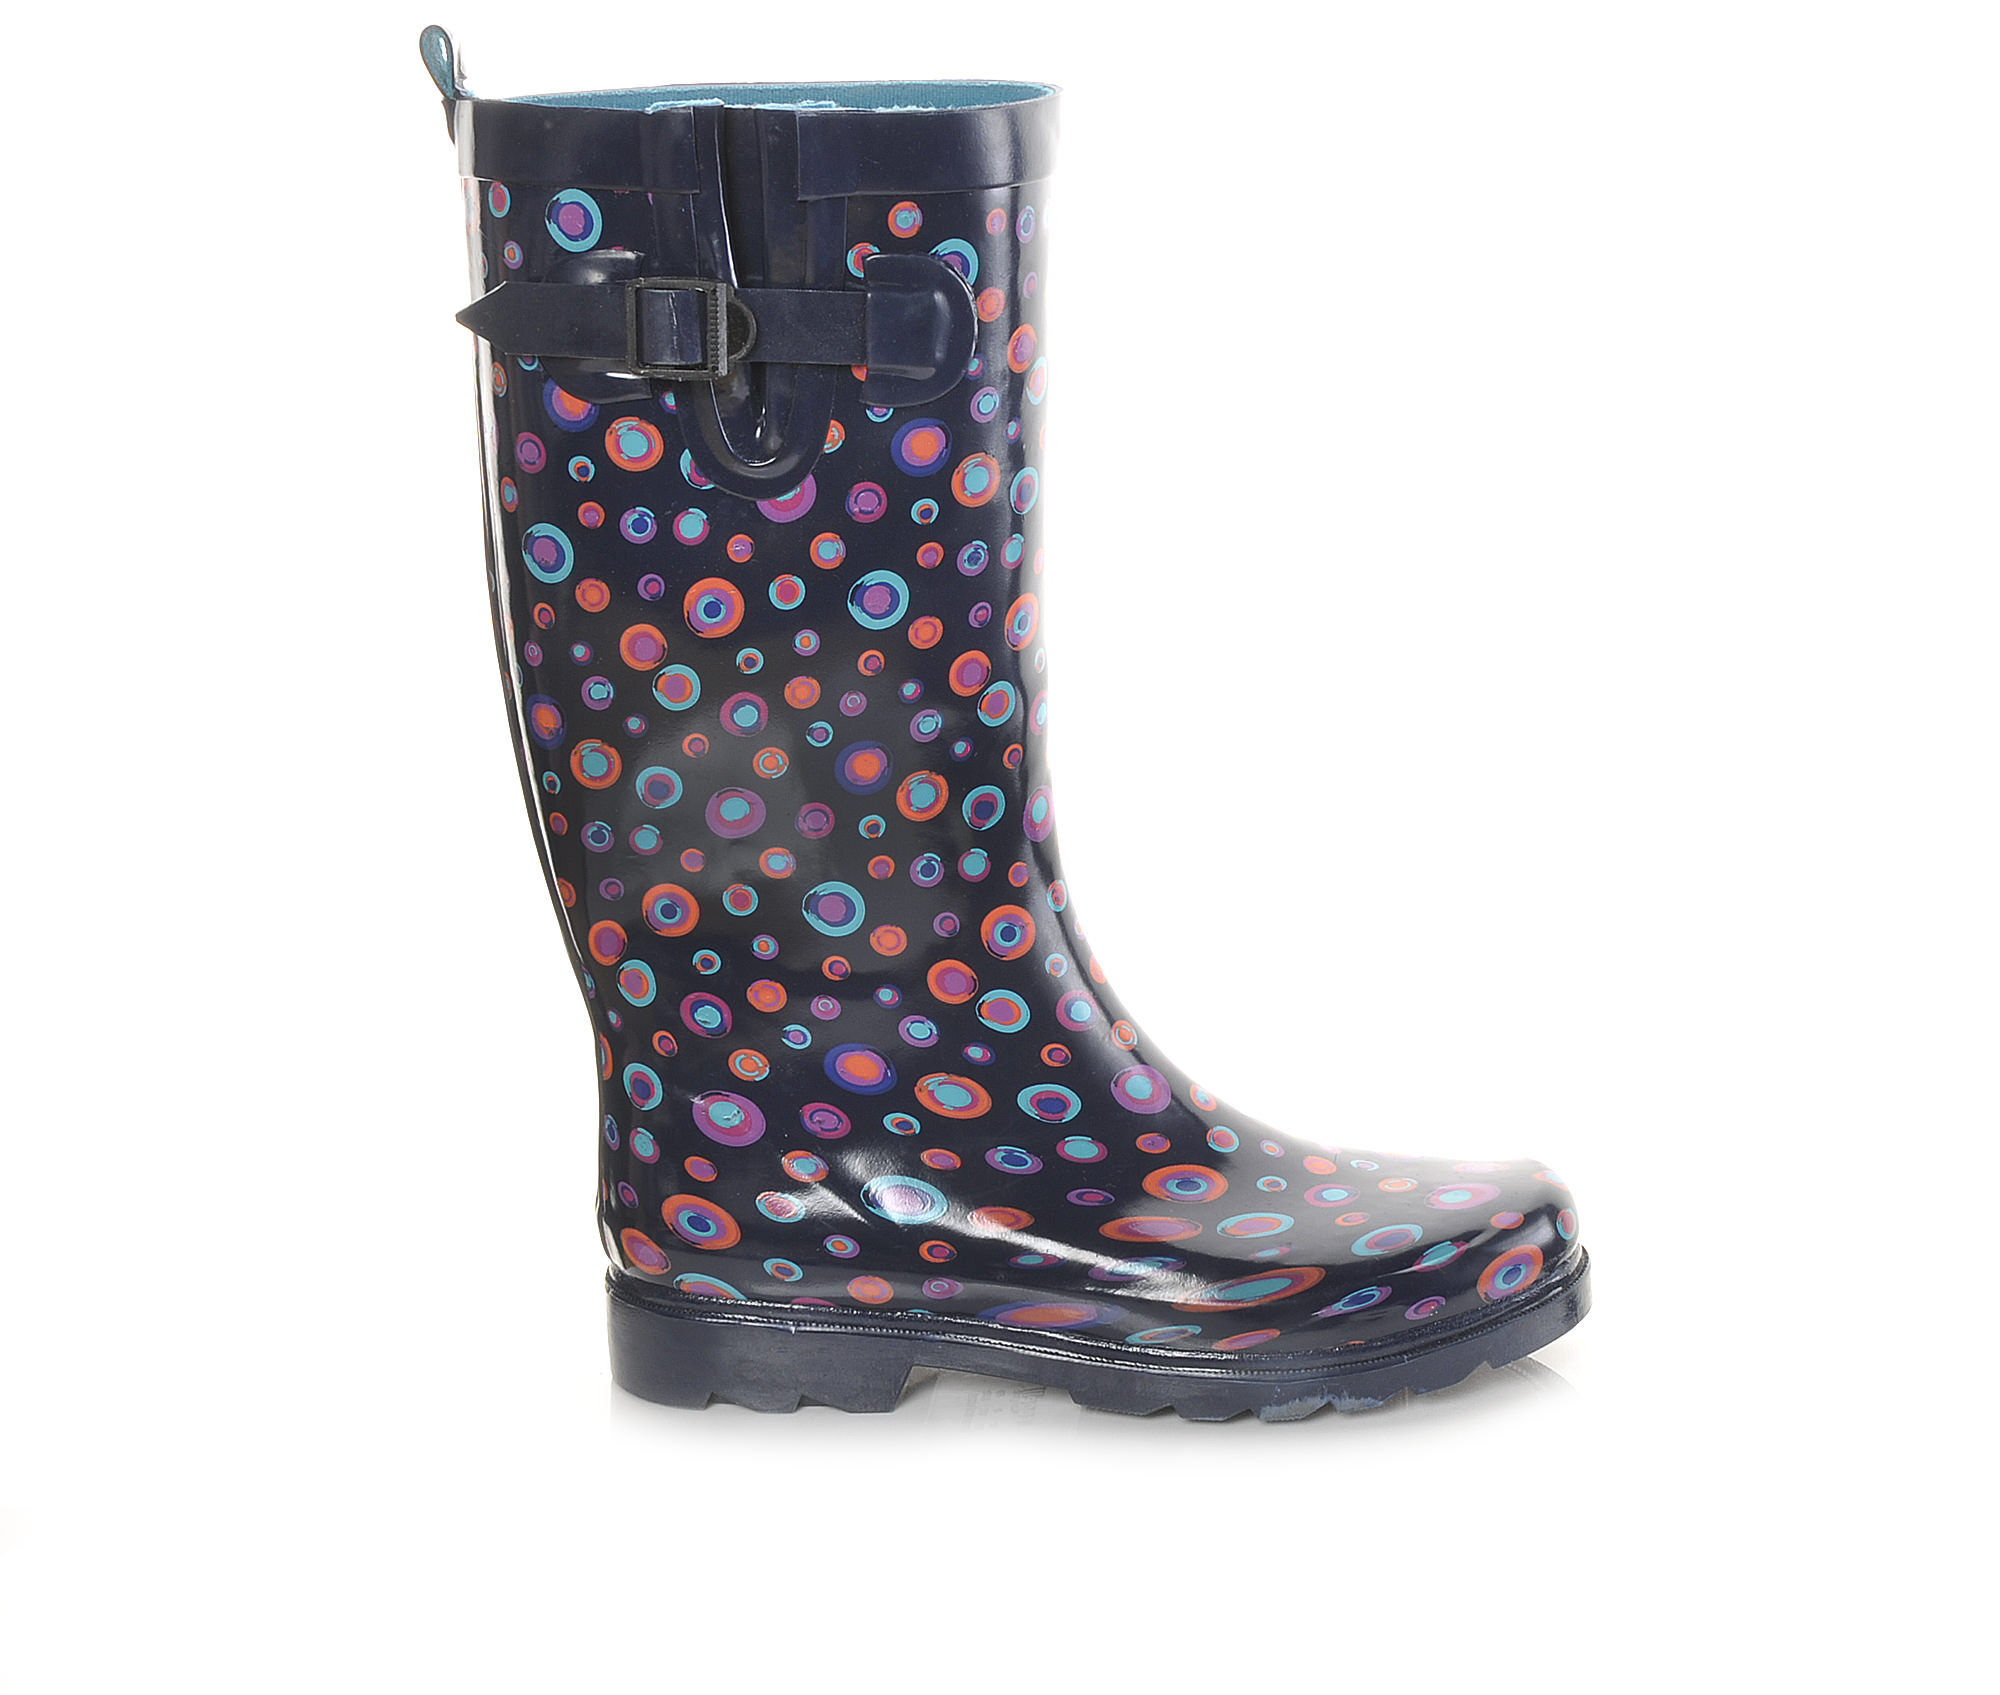 outlet with paypal order online cheap sale top quality Women's Capelli New York Shiny Marbles Rain Boots cheap sale latest huge surprise cheap price pick a best DQsbcr